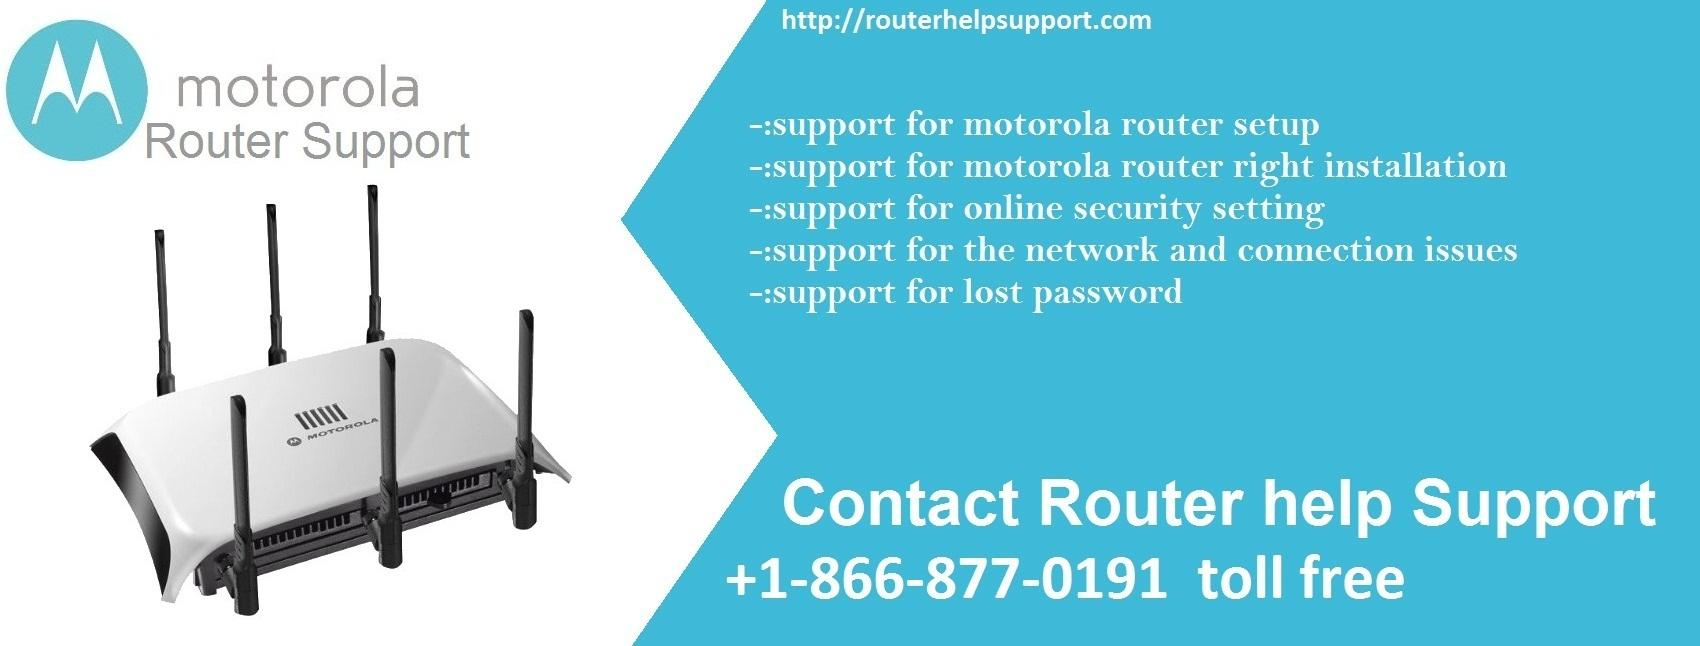 motorola router support by router-help-support